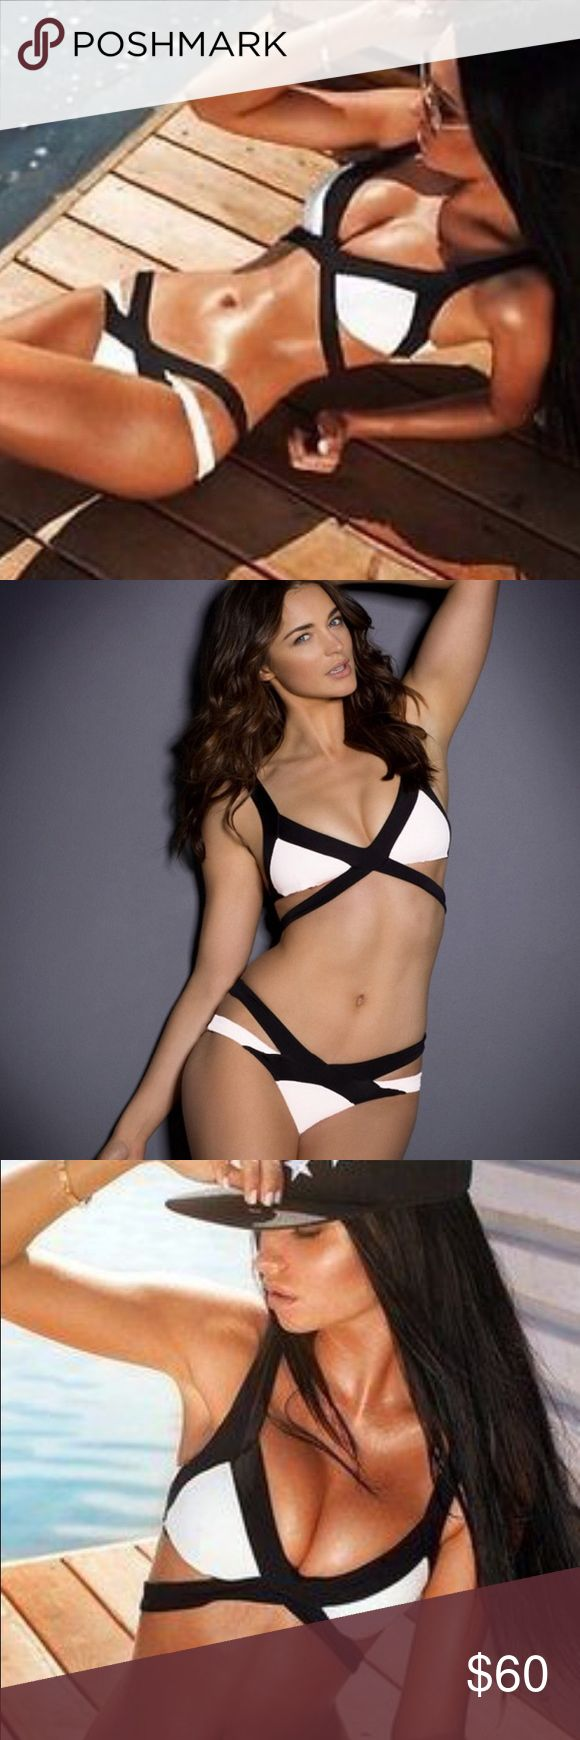 Sexy bandage cut out bikini Various sizes. Compare to agent provocateur. White and black. Swim Bikinis